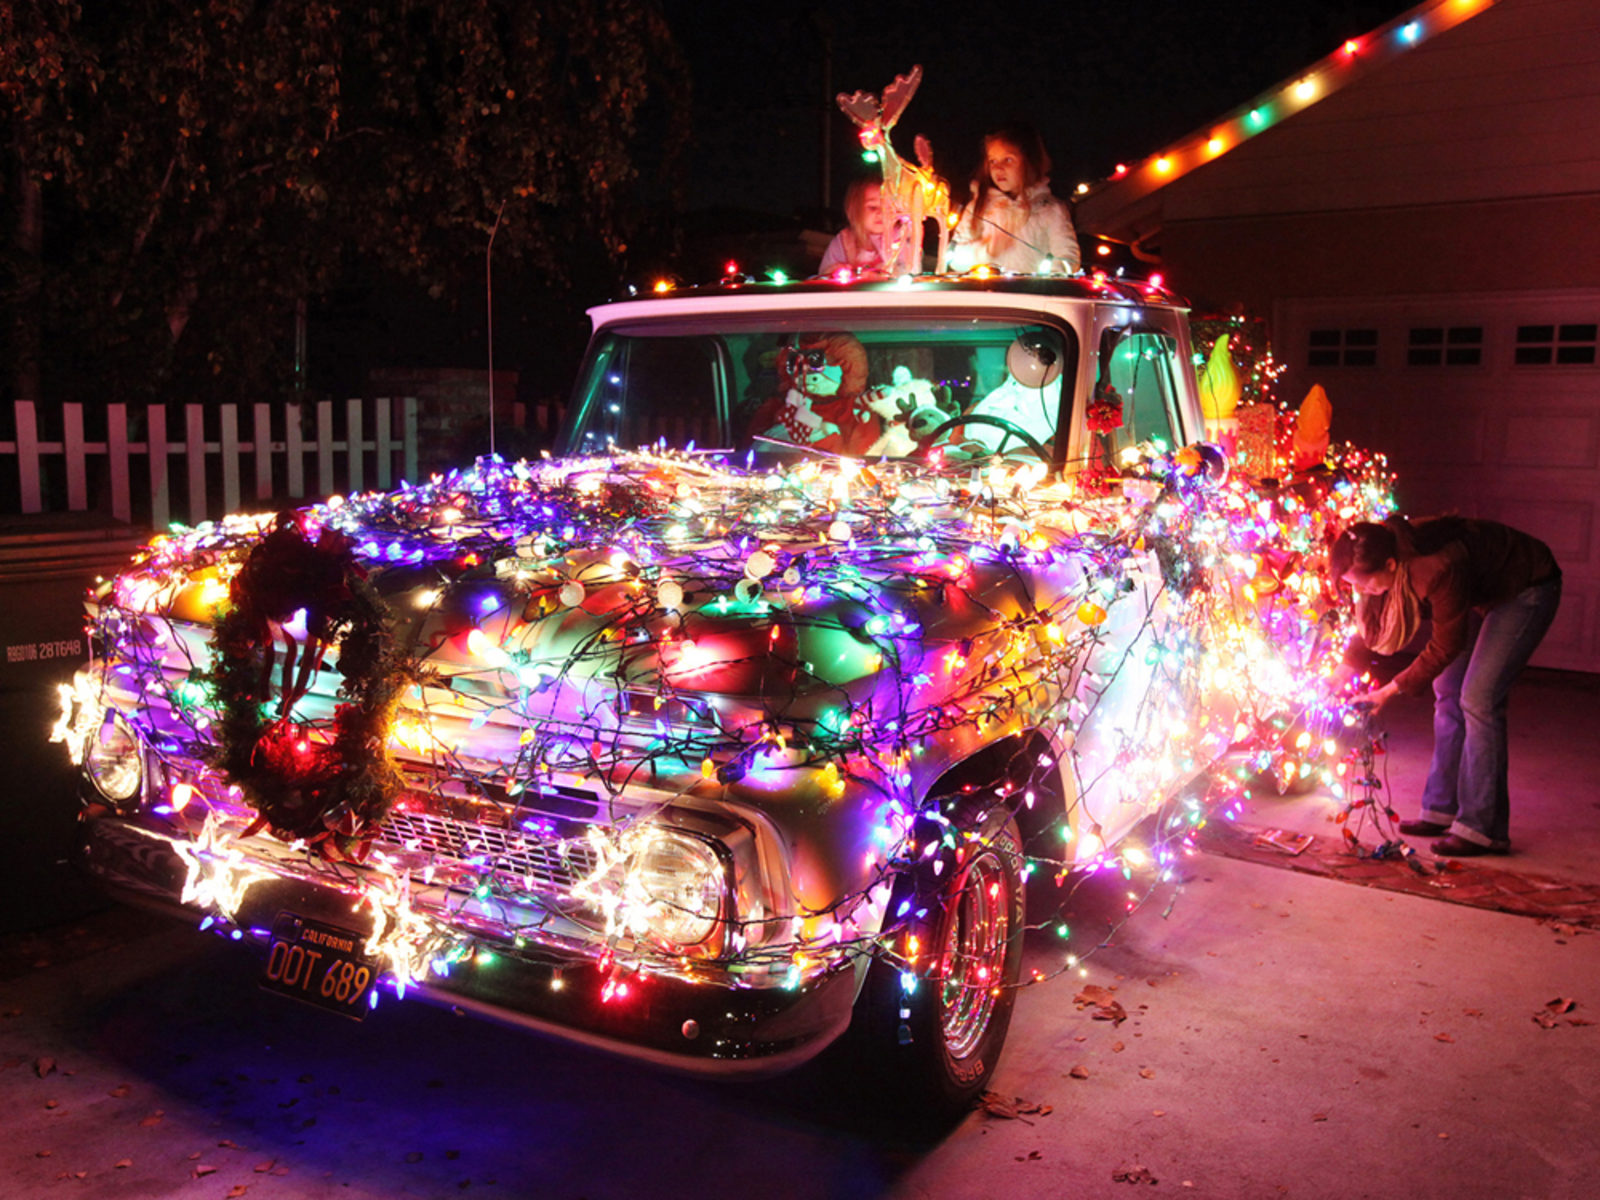 Image: A 1965 Chevy pick-up truck decorated for Christmas.